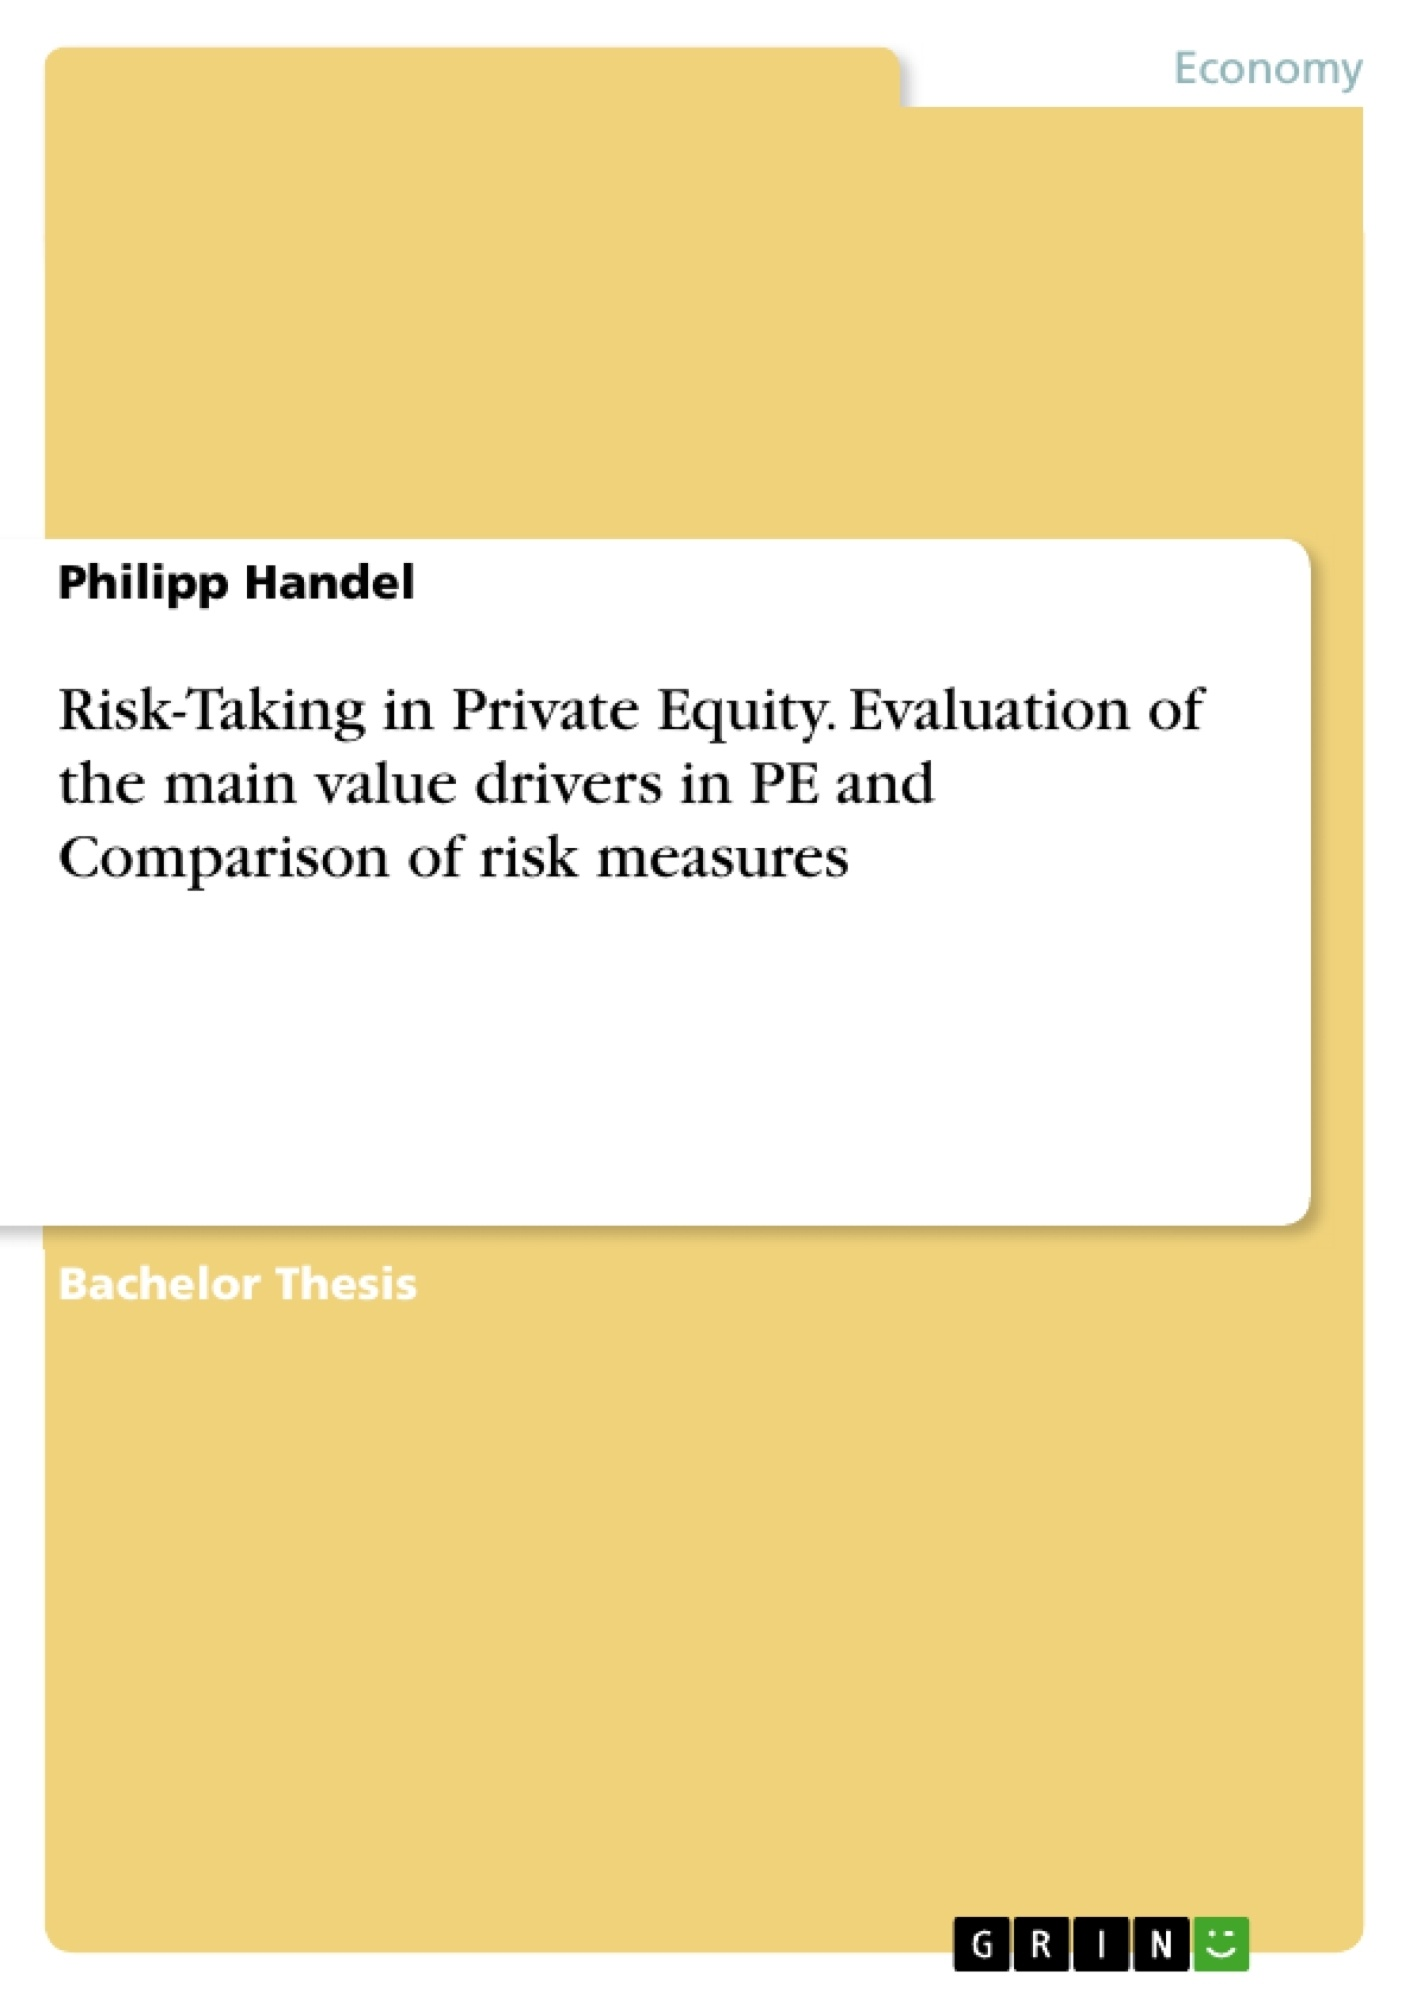 Title: Risk-Taking in Private Equity. Evaluation of the main value drivers in PE and Comparison of risk measures